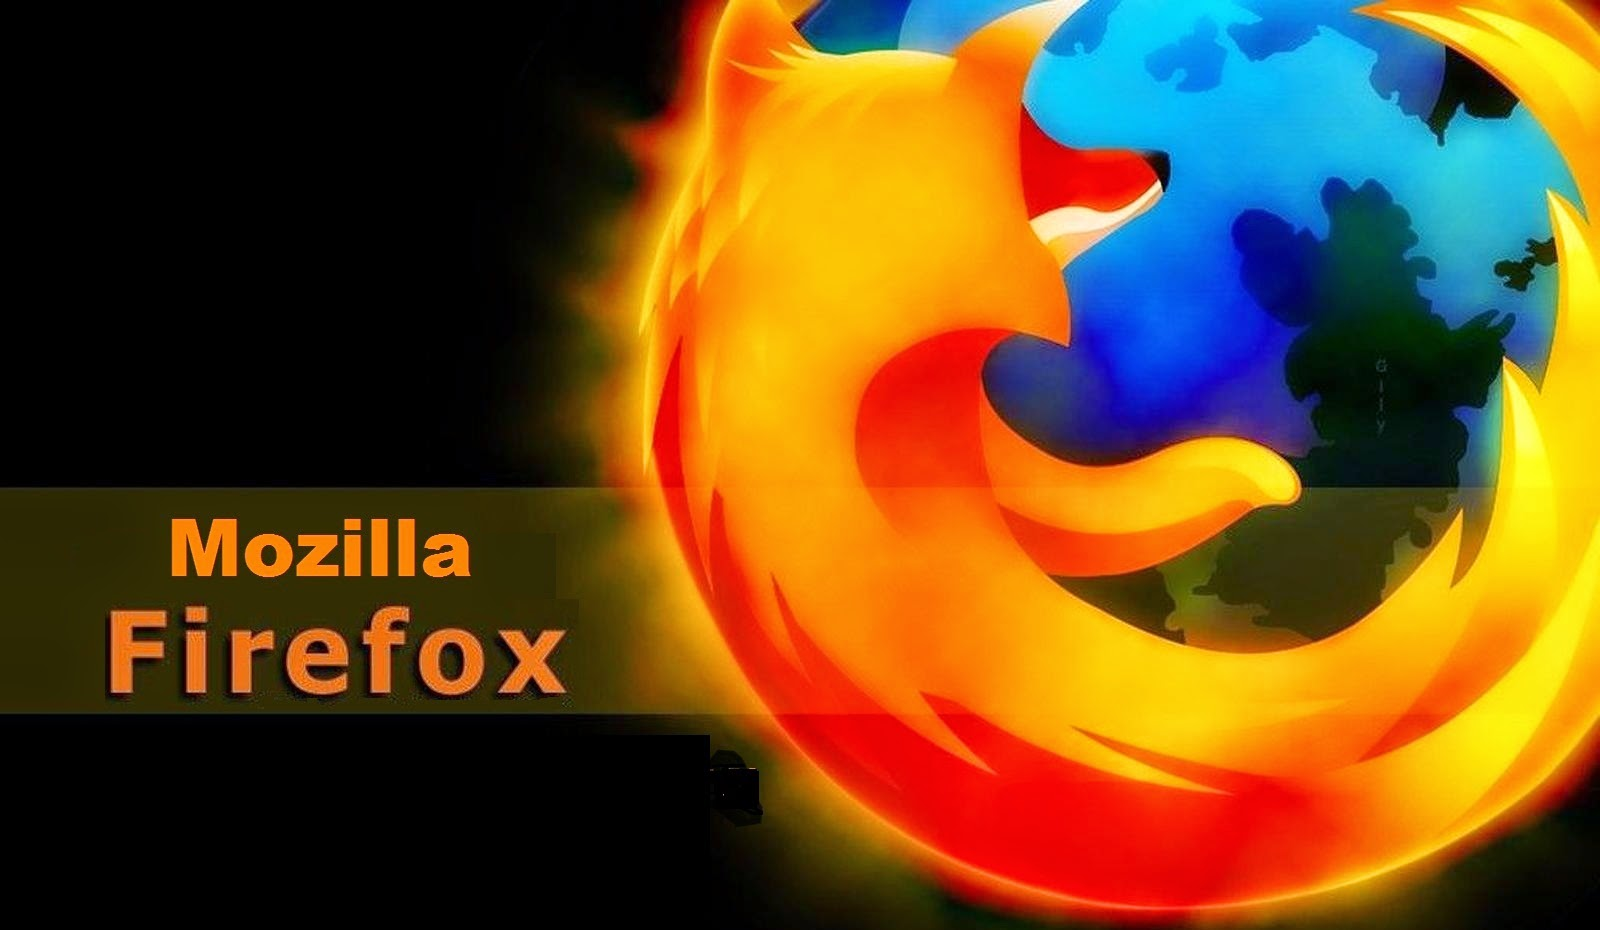 Mozilla Data breached, hacking mozilla, data breached offilefox, security of Mozilla firefox, cyber hacker attack, Mozilla breached, Firefox hacked